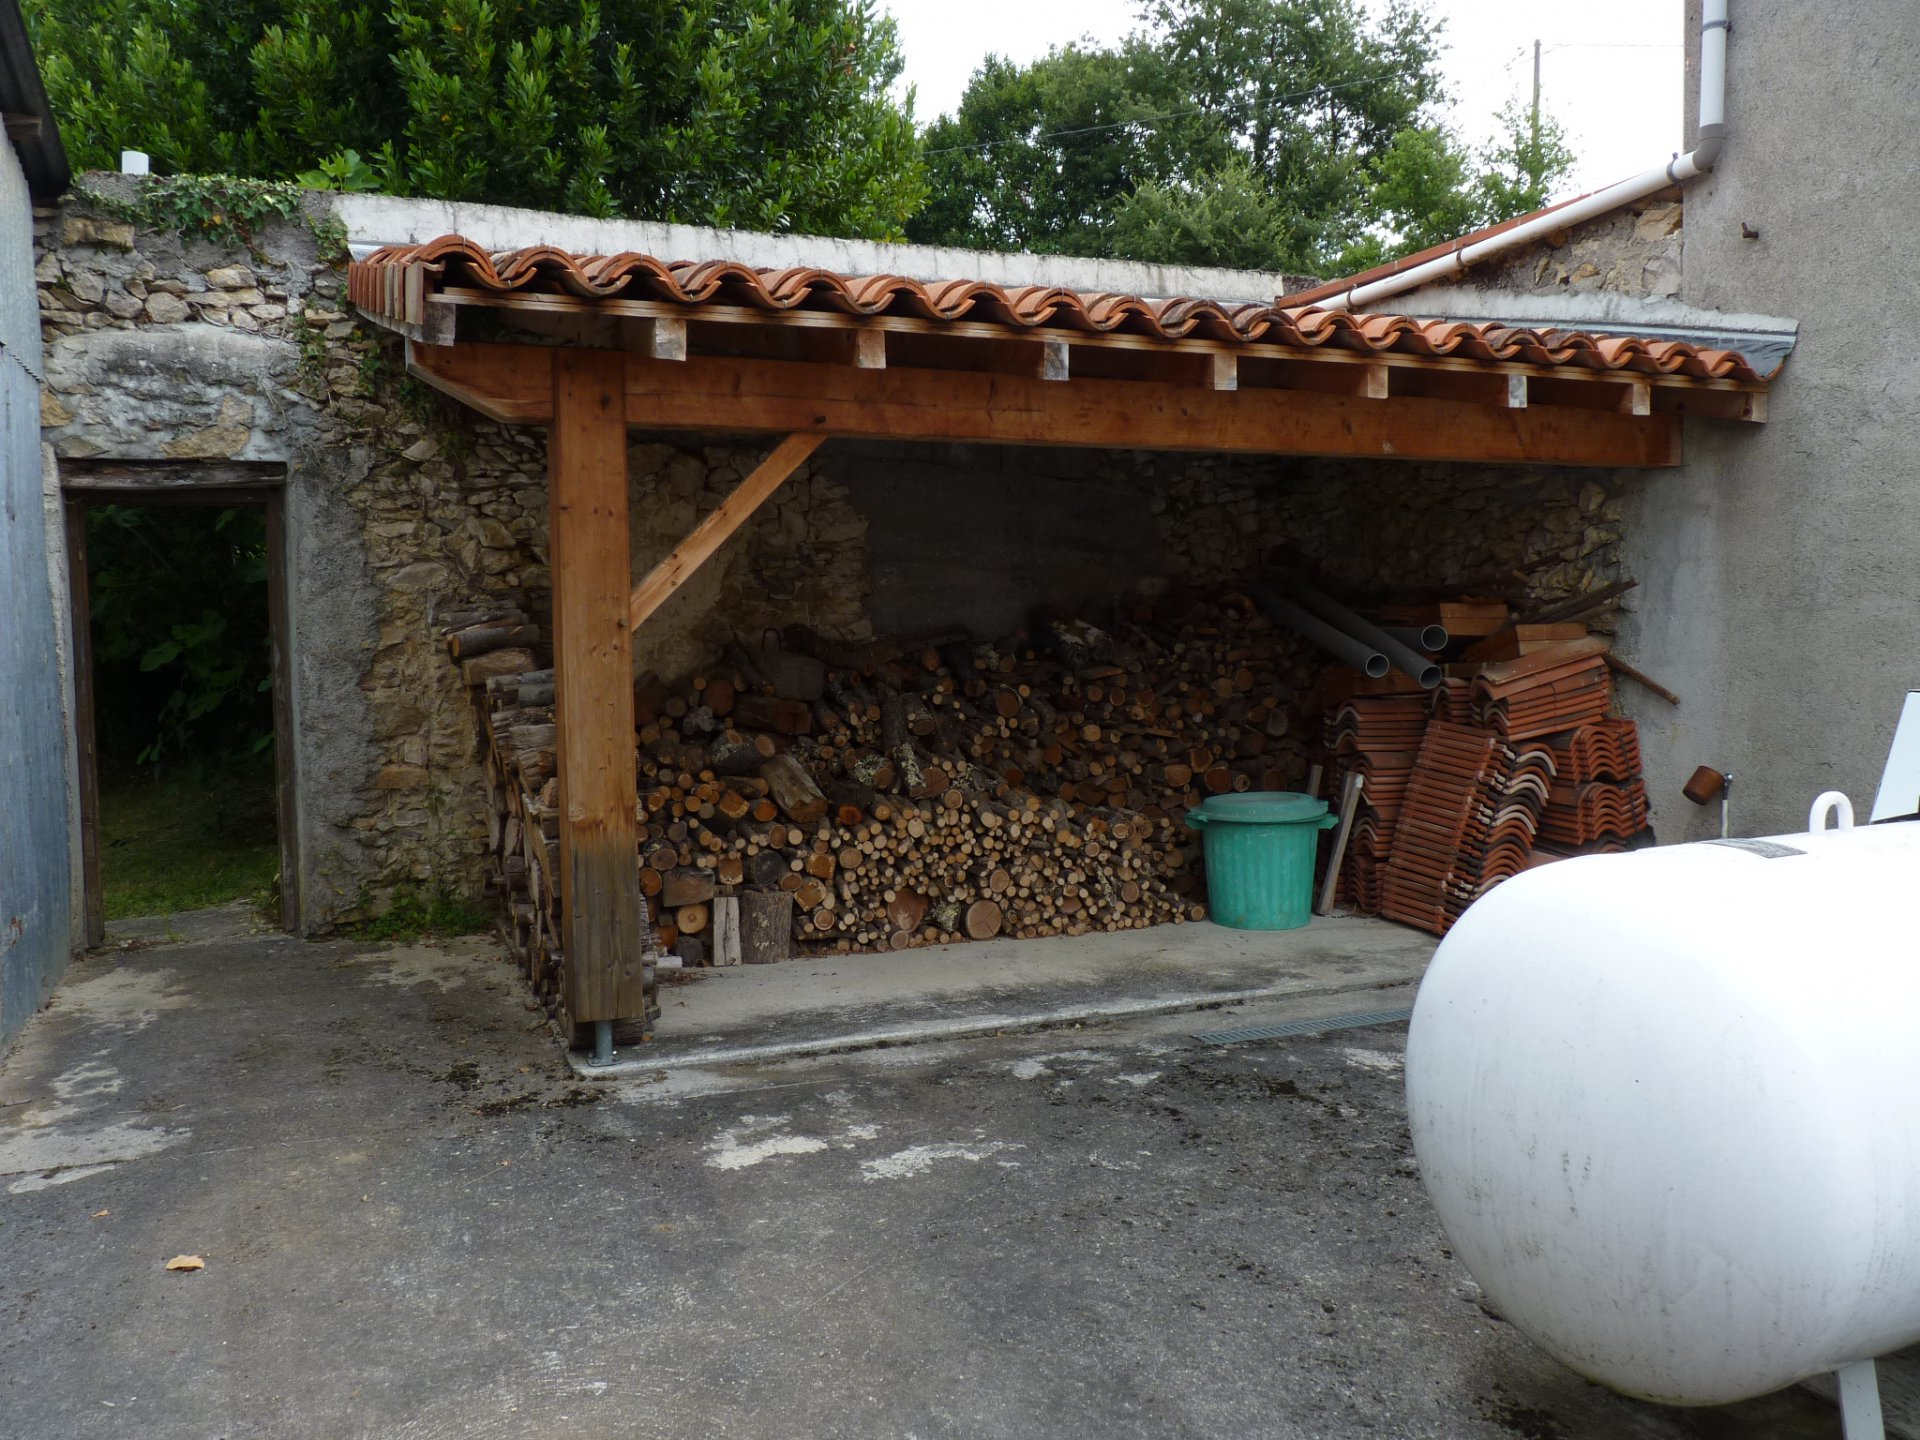 Sector FRECHET, village house stone part